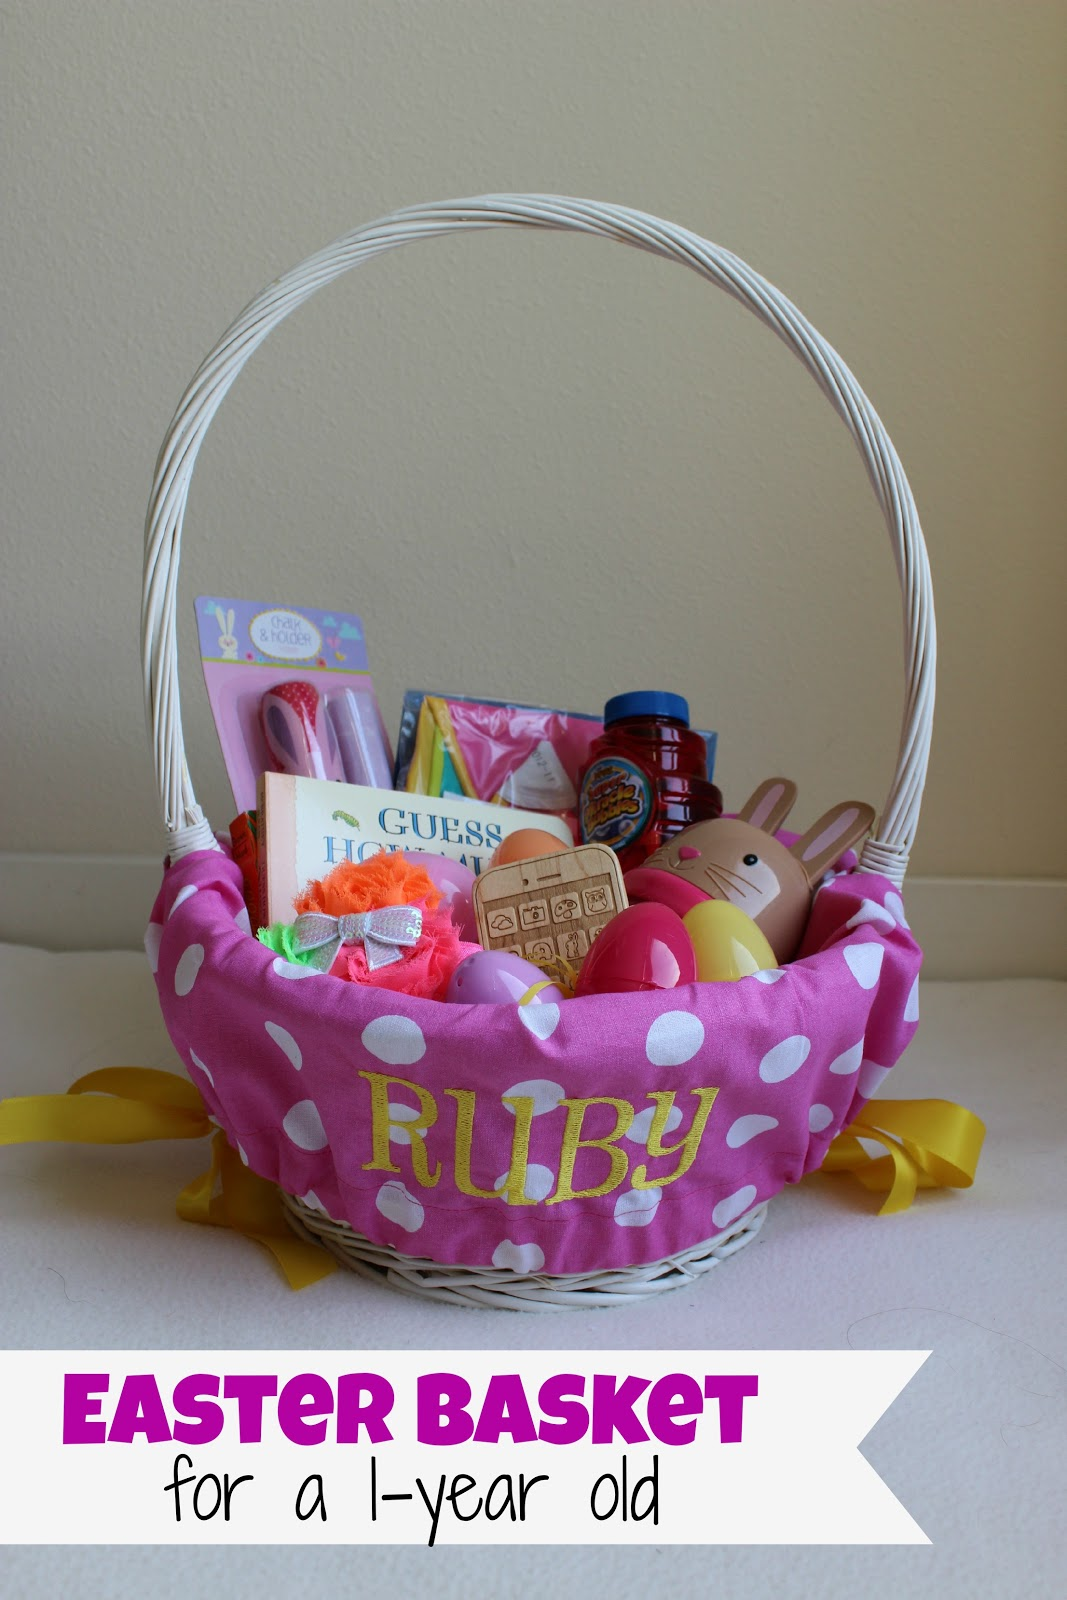 We g three rubys first easter basket a basket easter grass and easter eggs when i was growing up we got a new basket every year while that was cool negle Gallery